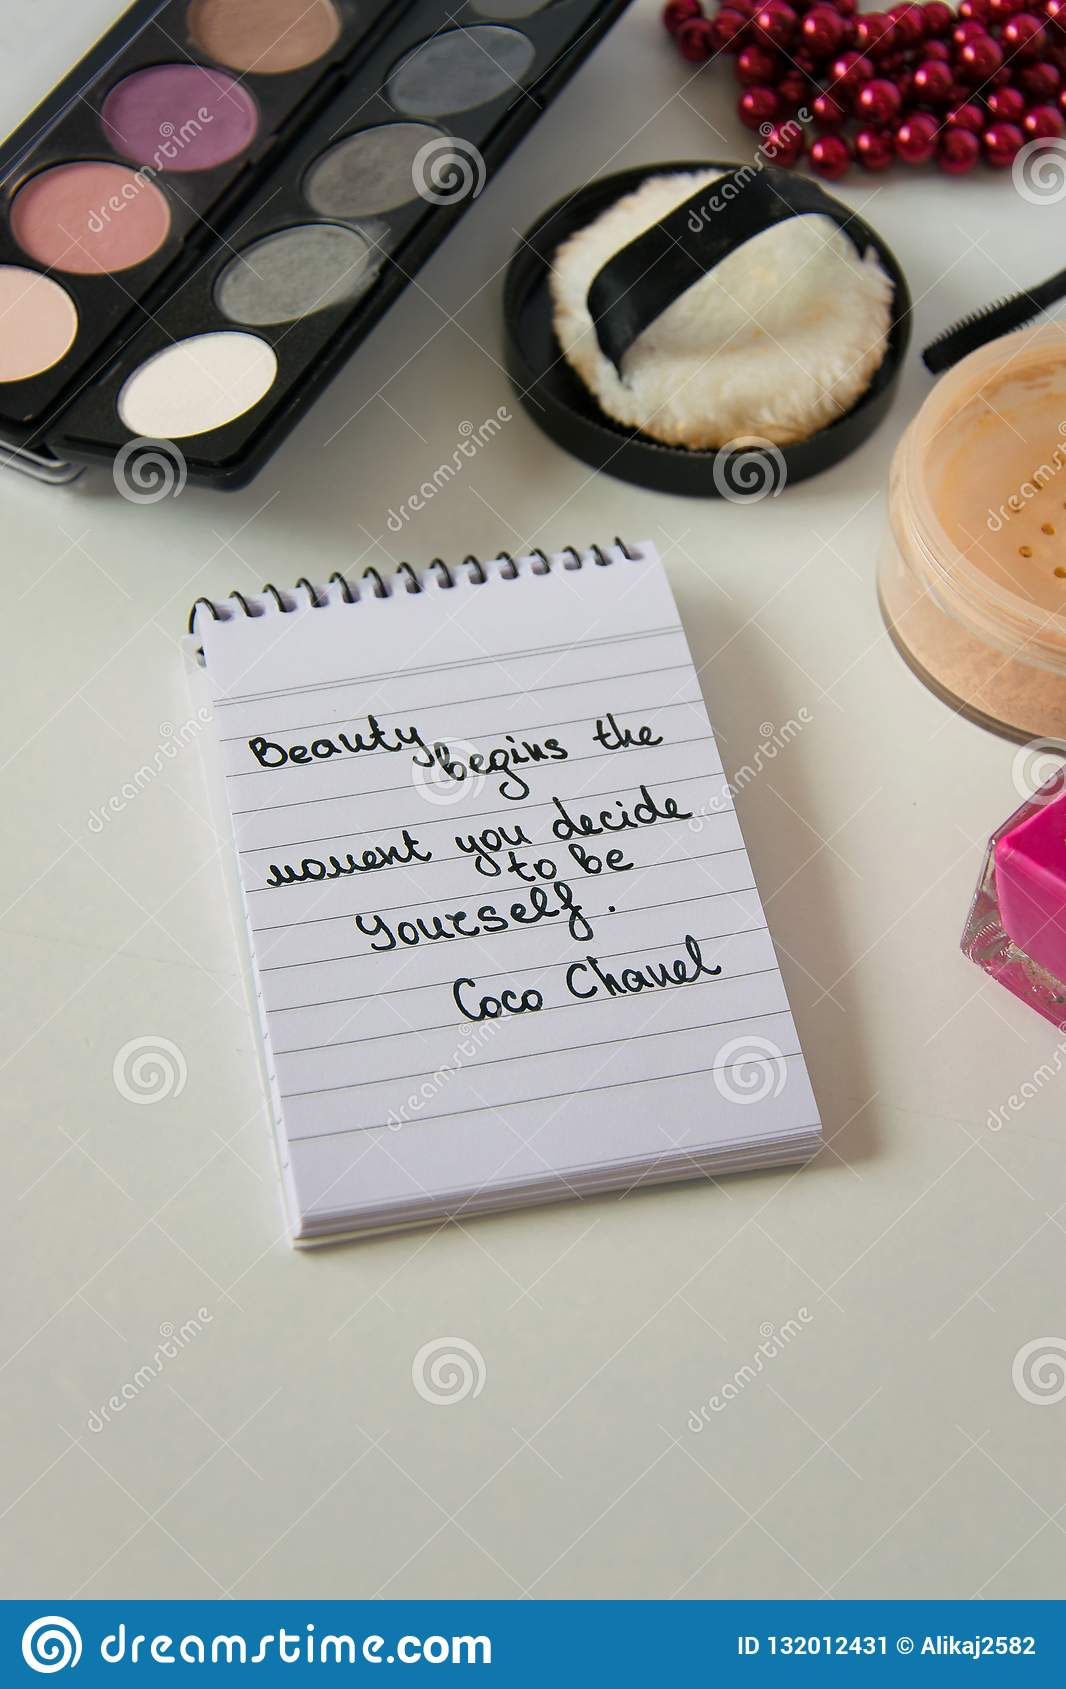 Coco Chanel quotes written on a block note, pearl accessories and make up on white background